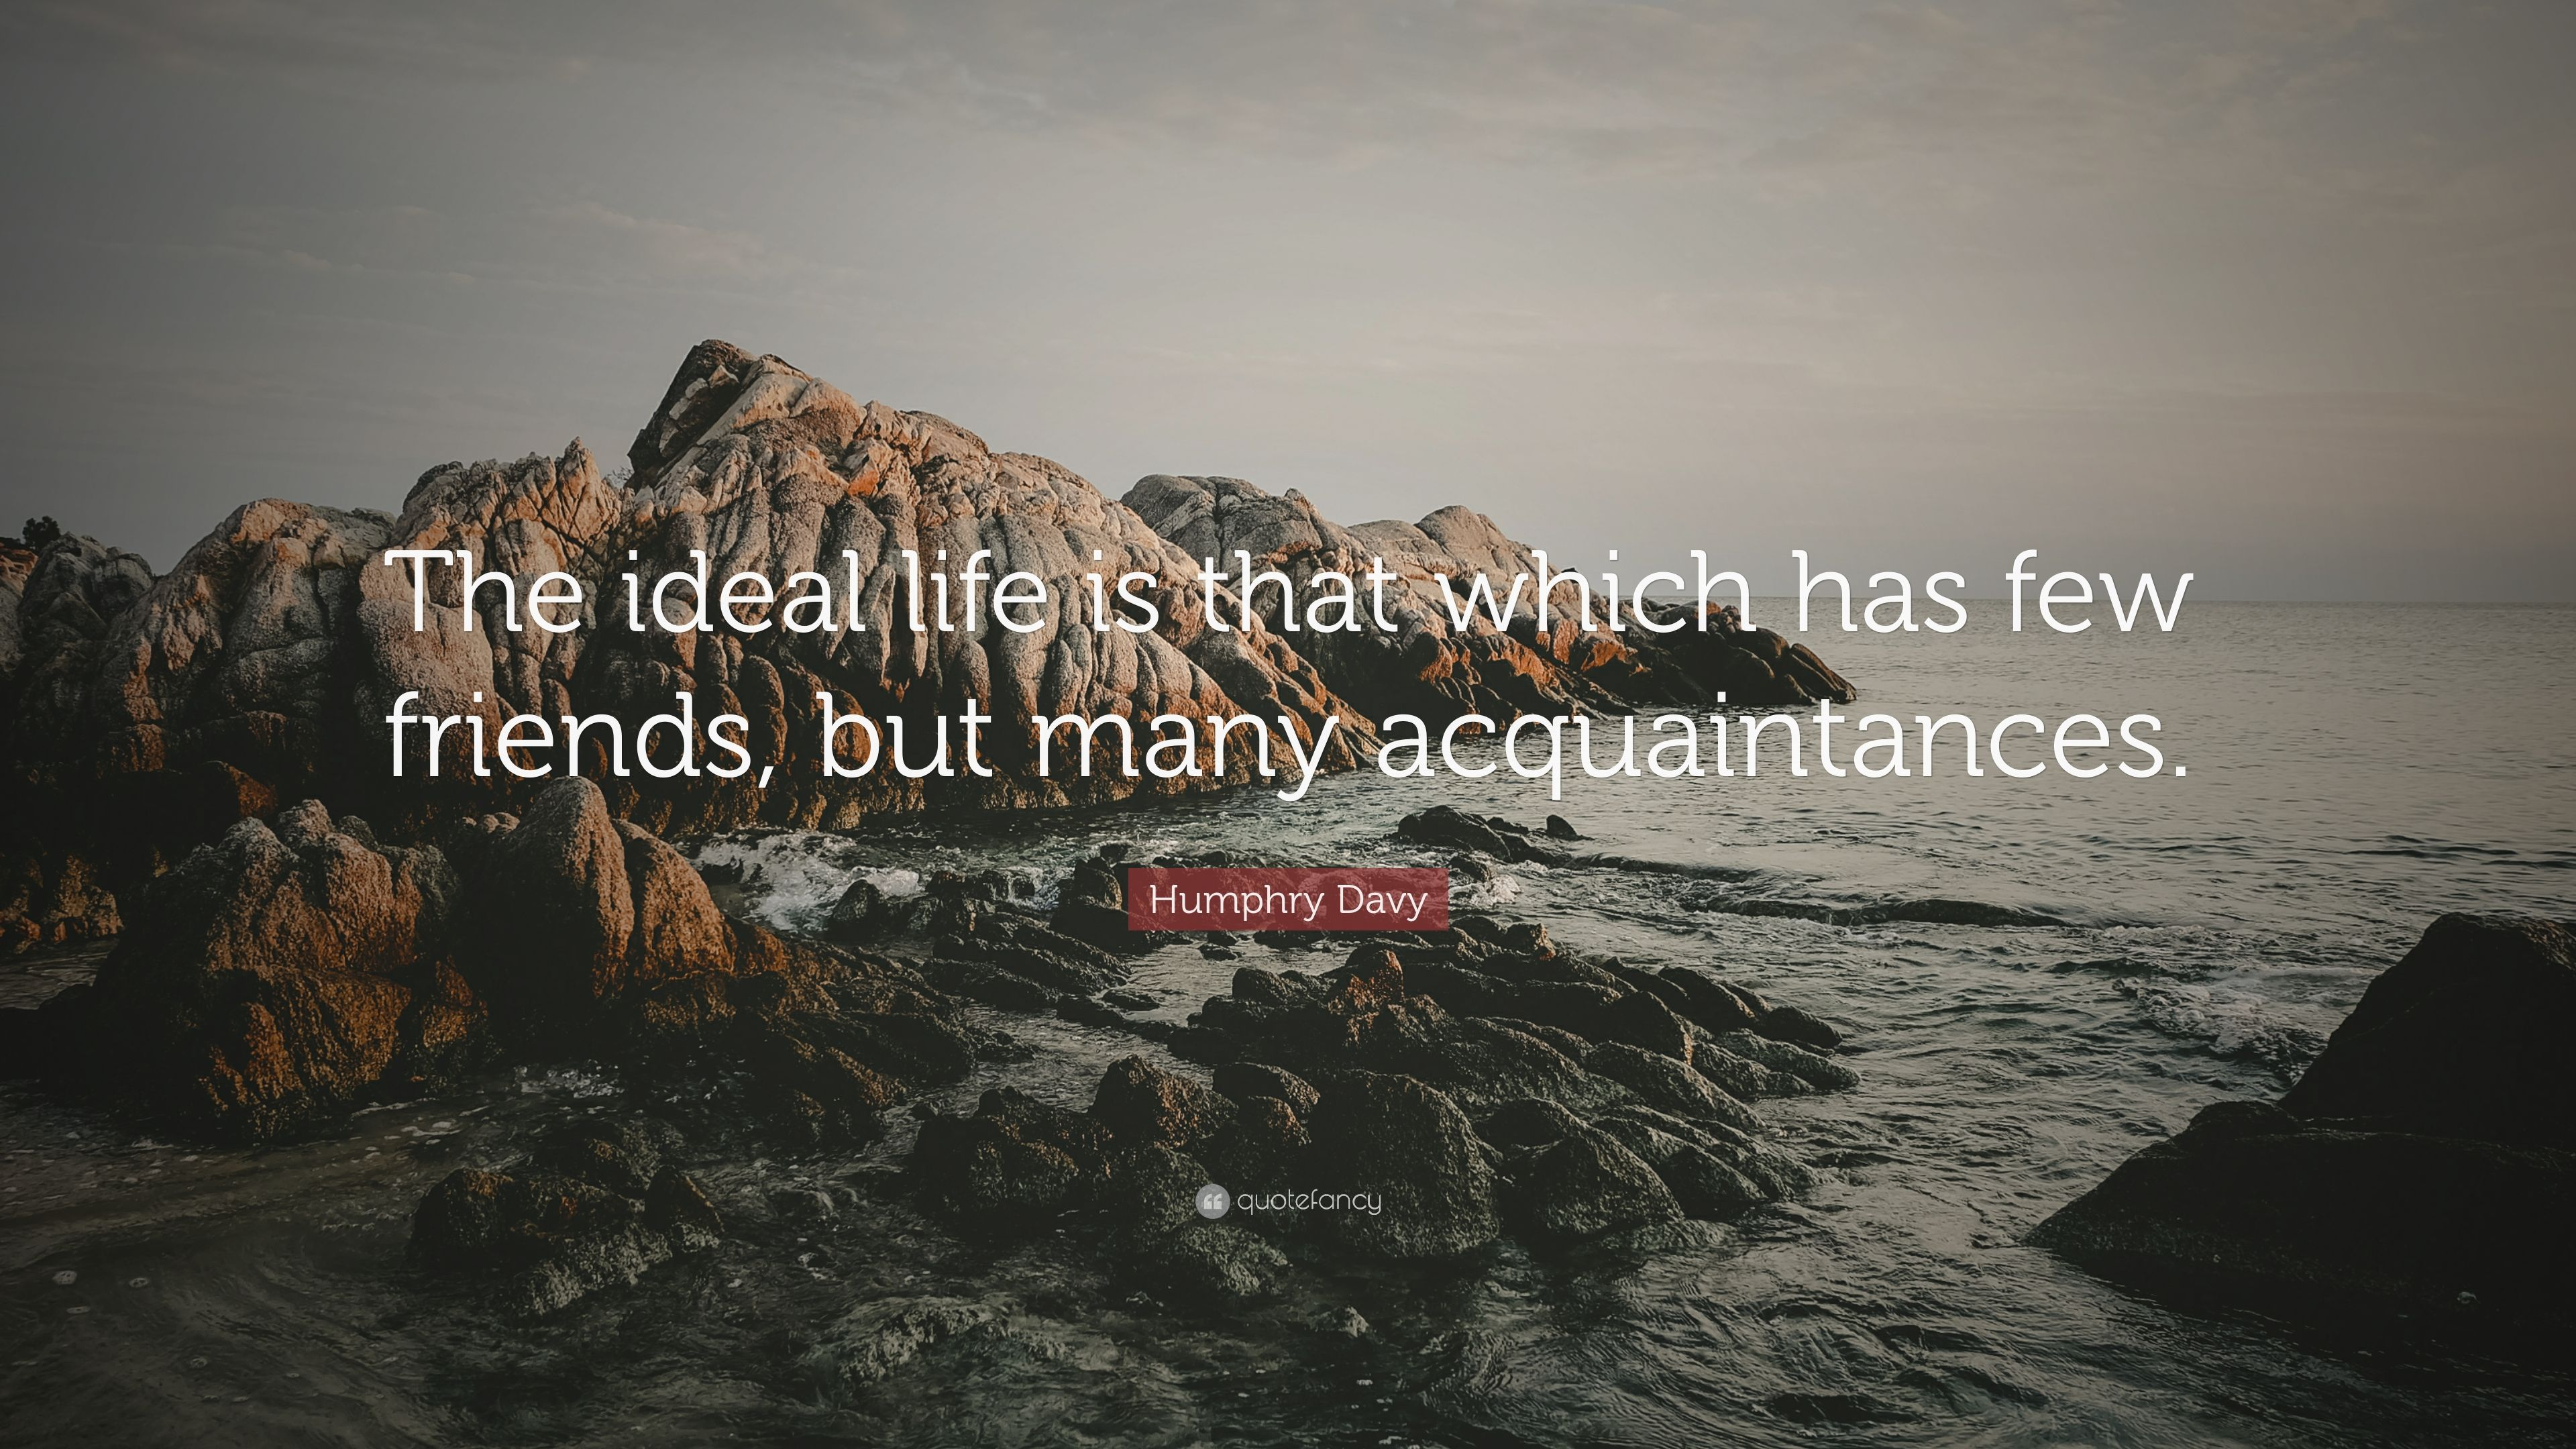 Humphry Davy Quote: U201cThe Ideal Life Is That Which Has Few Friends, But